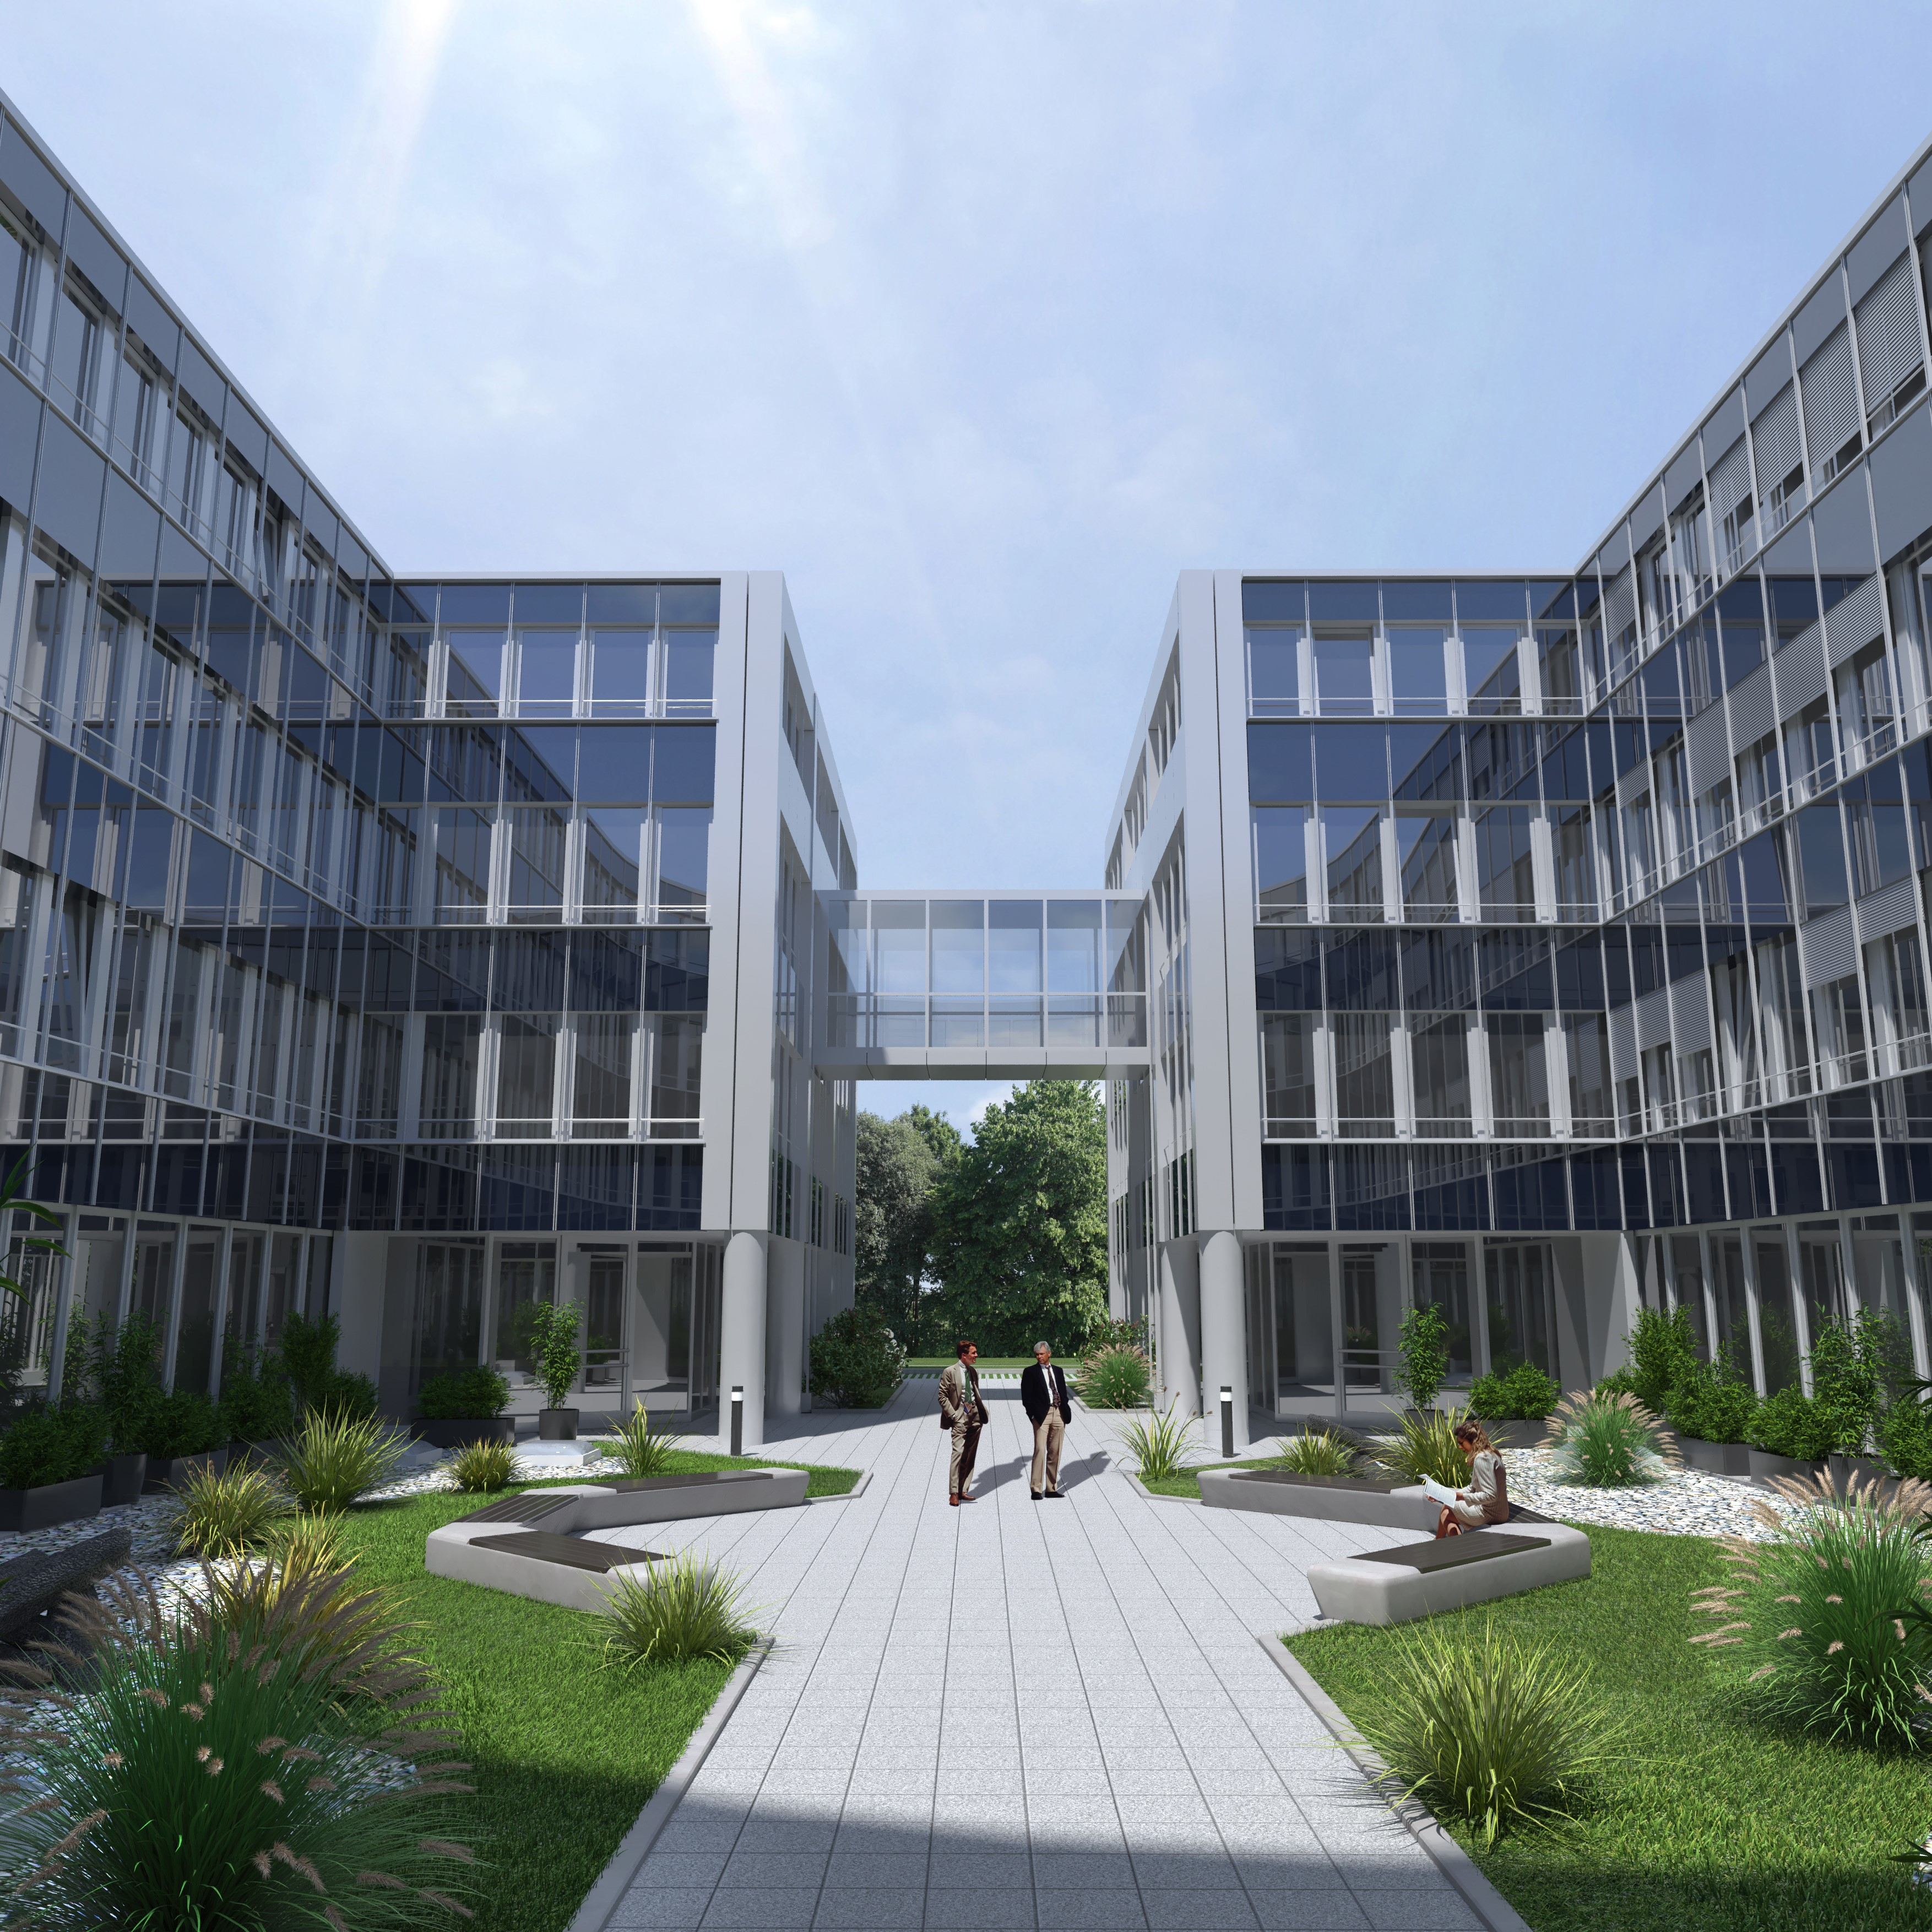 CT Group moves to its new Munich headquarters in the Hatrium office complex in Unterhaching.